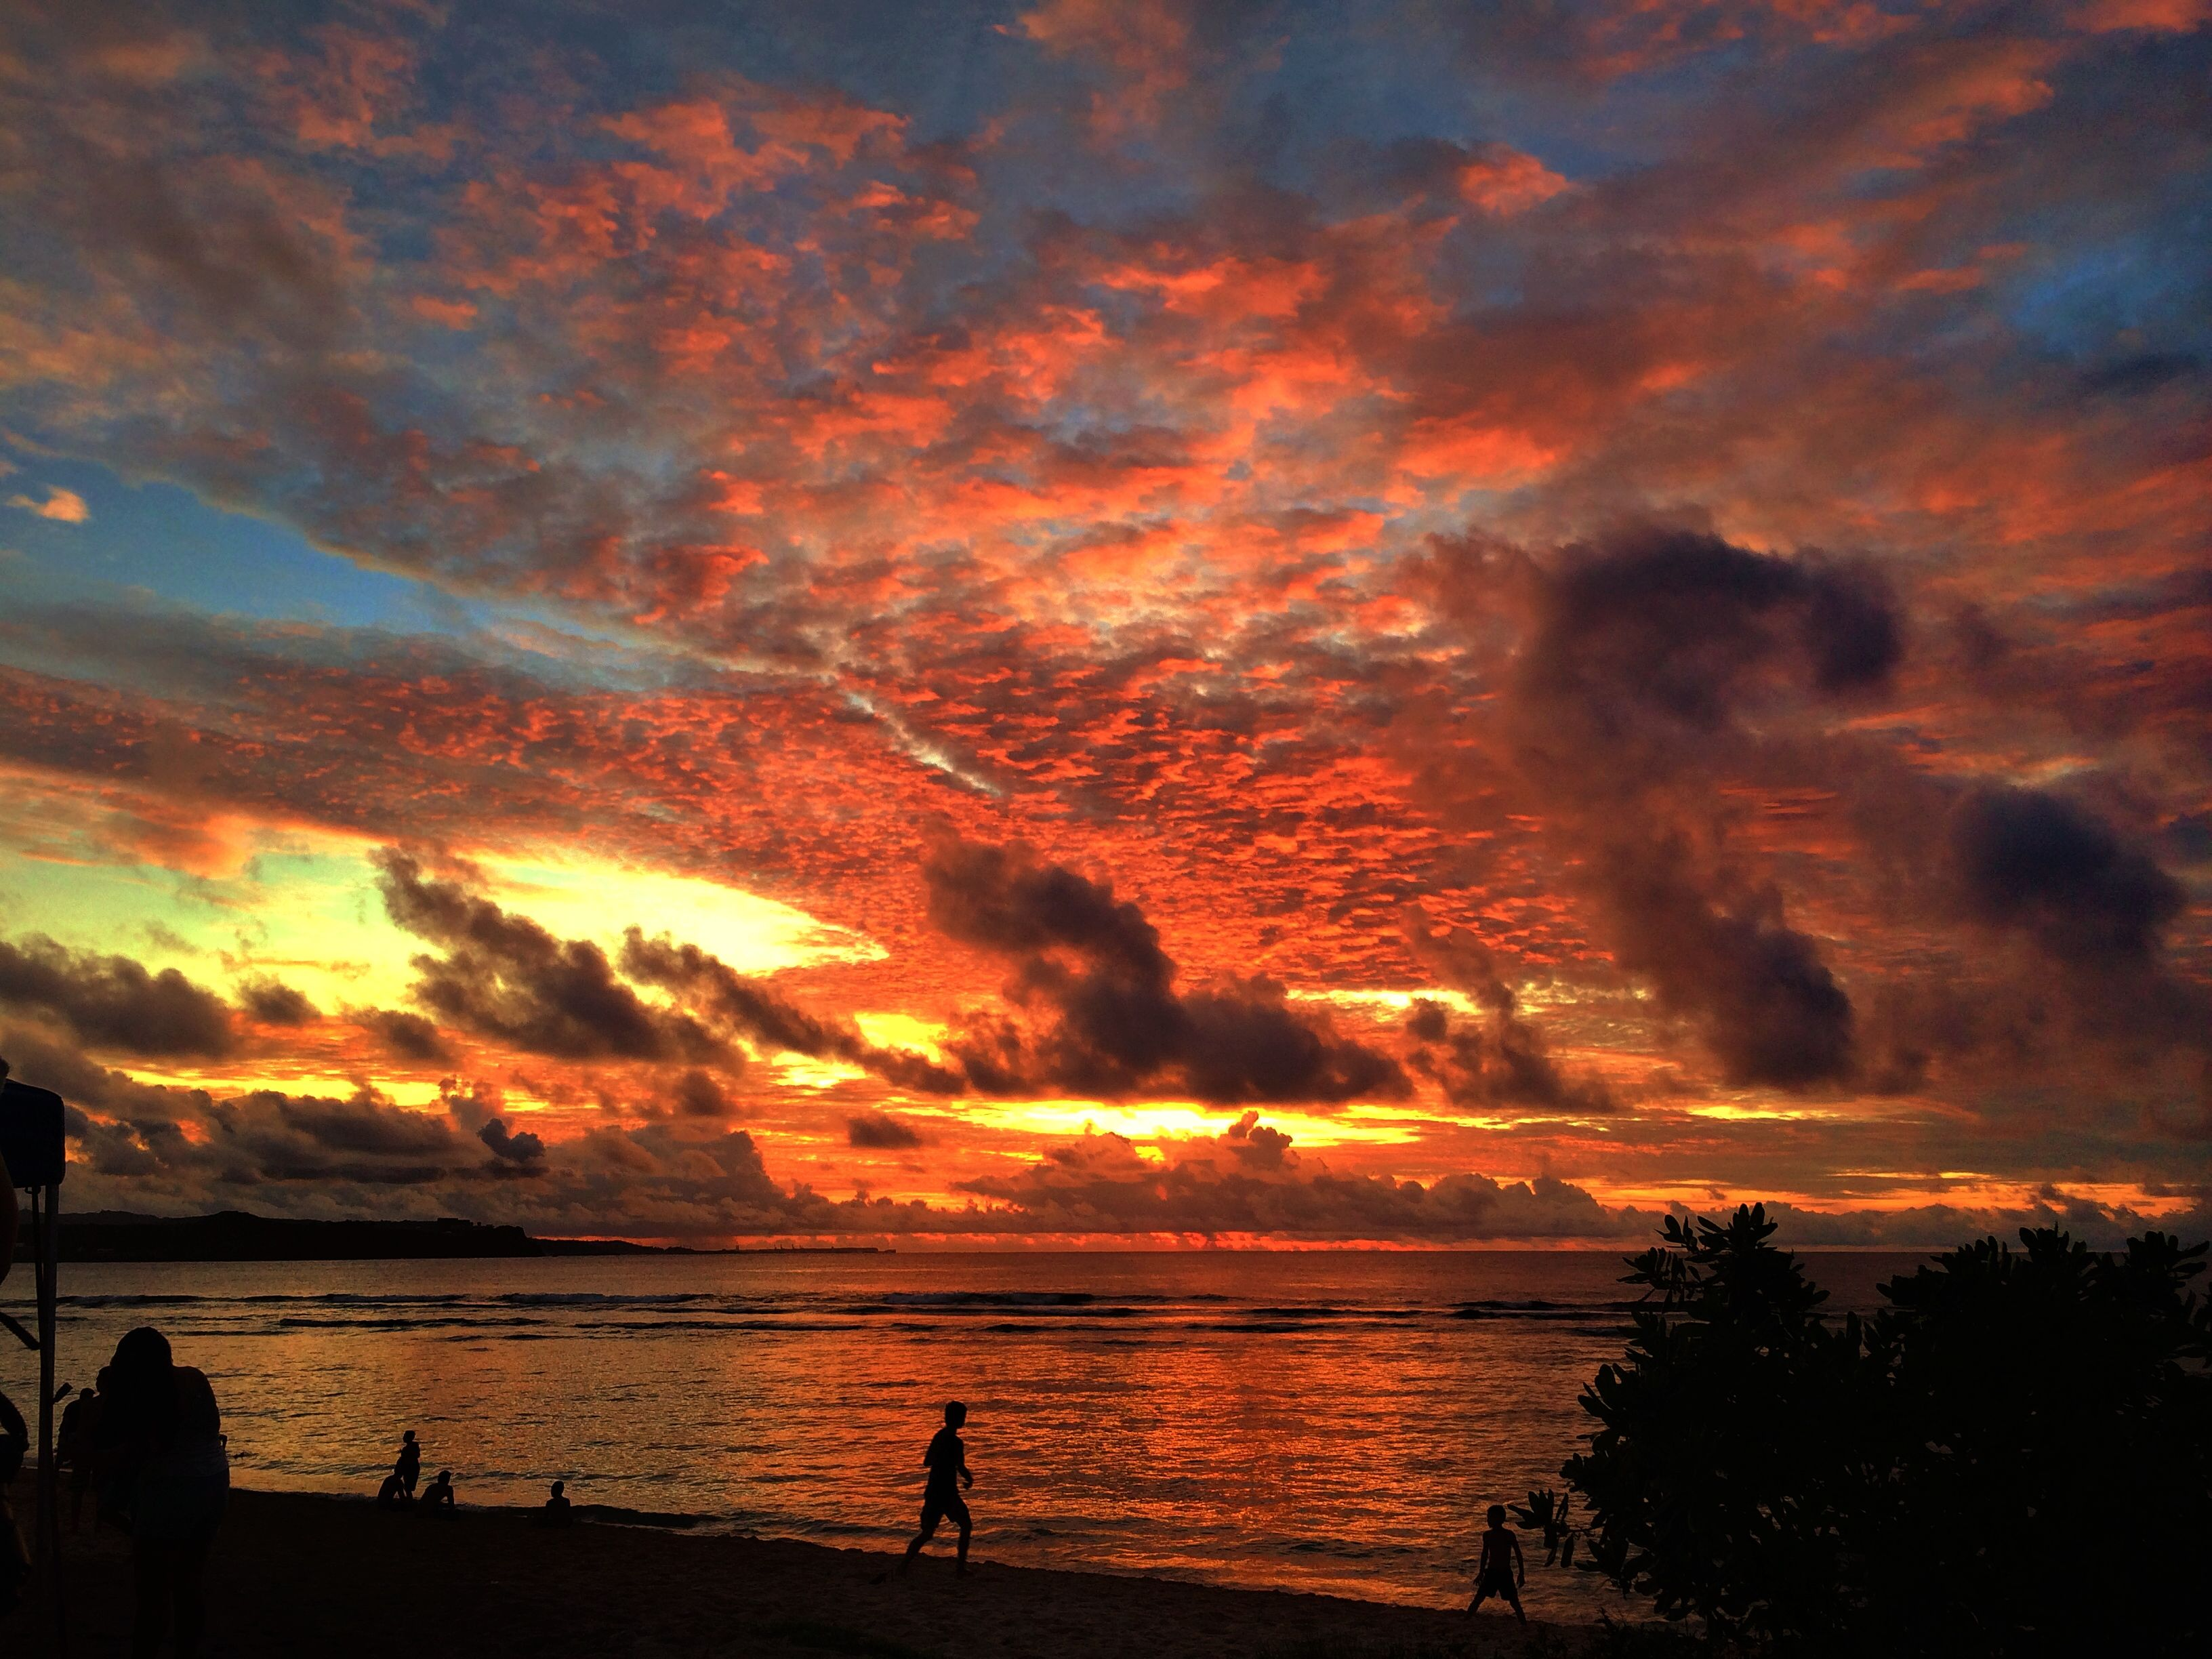 sunset gun beach 2014 guam pinterest